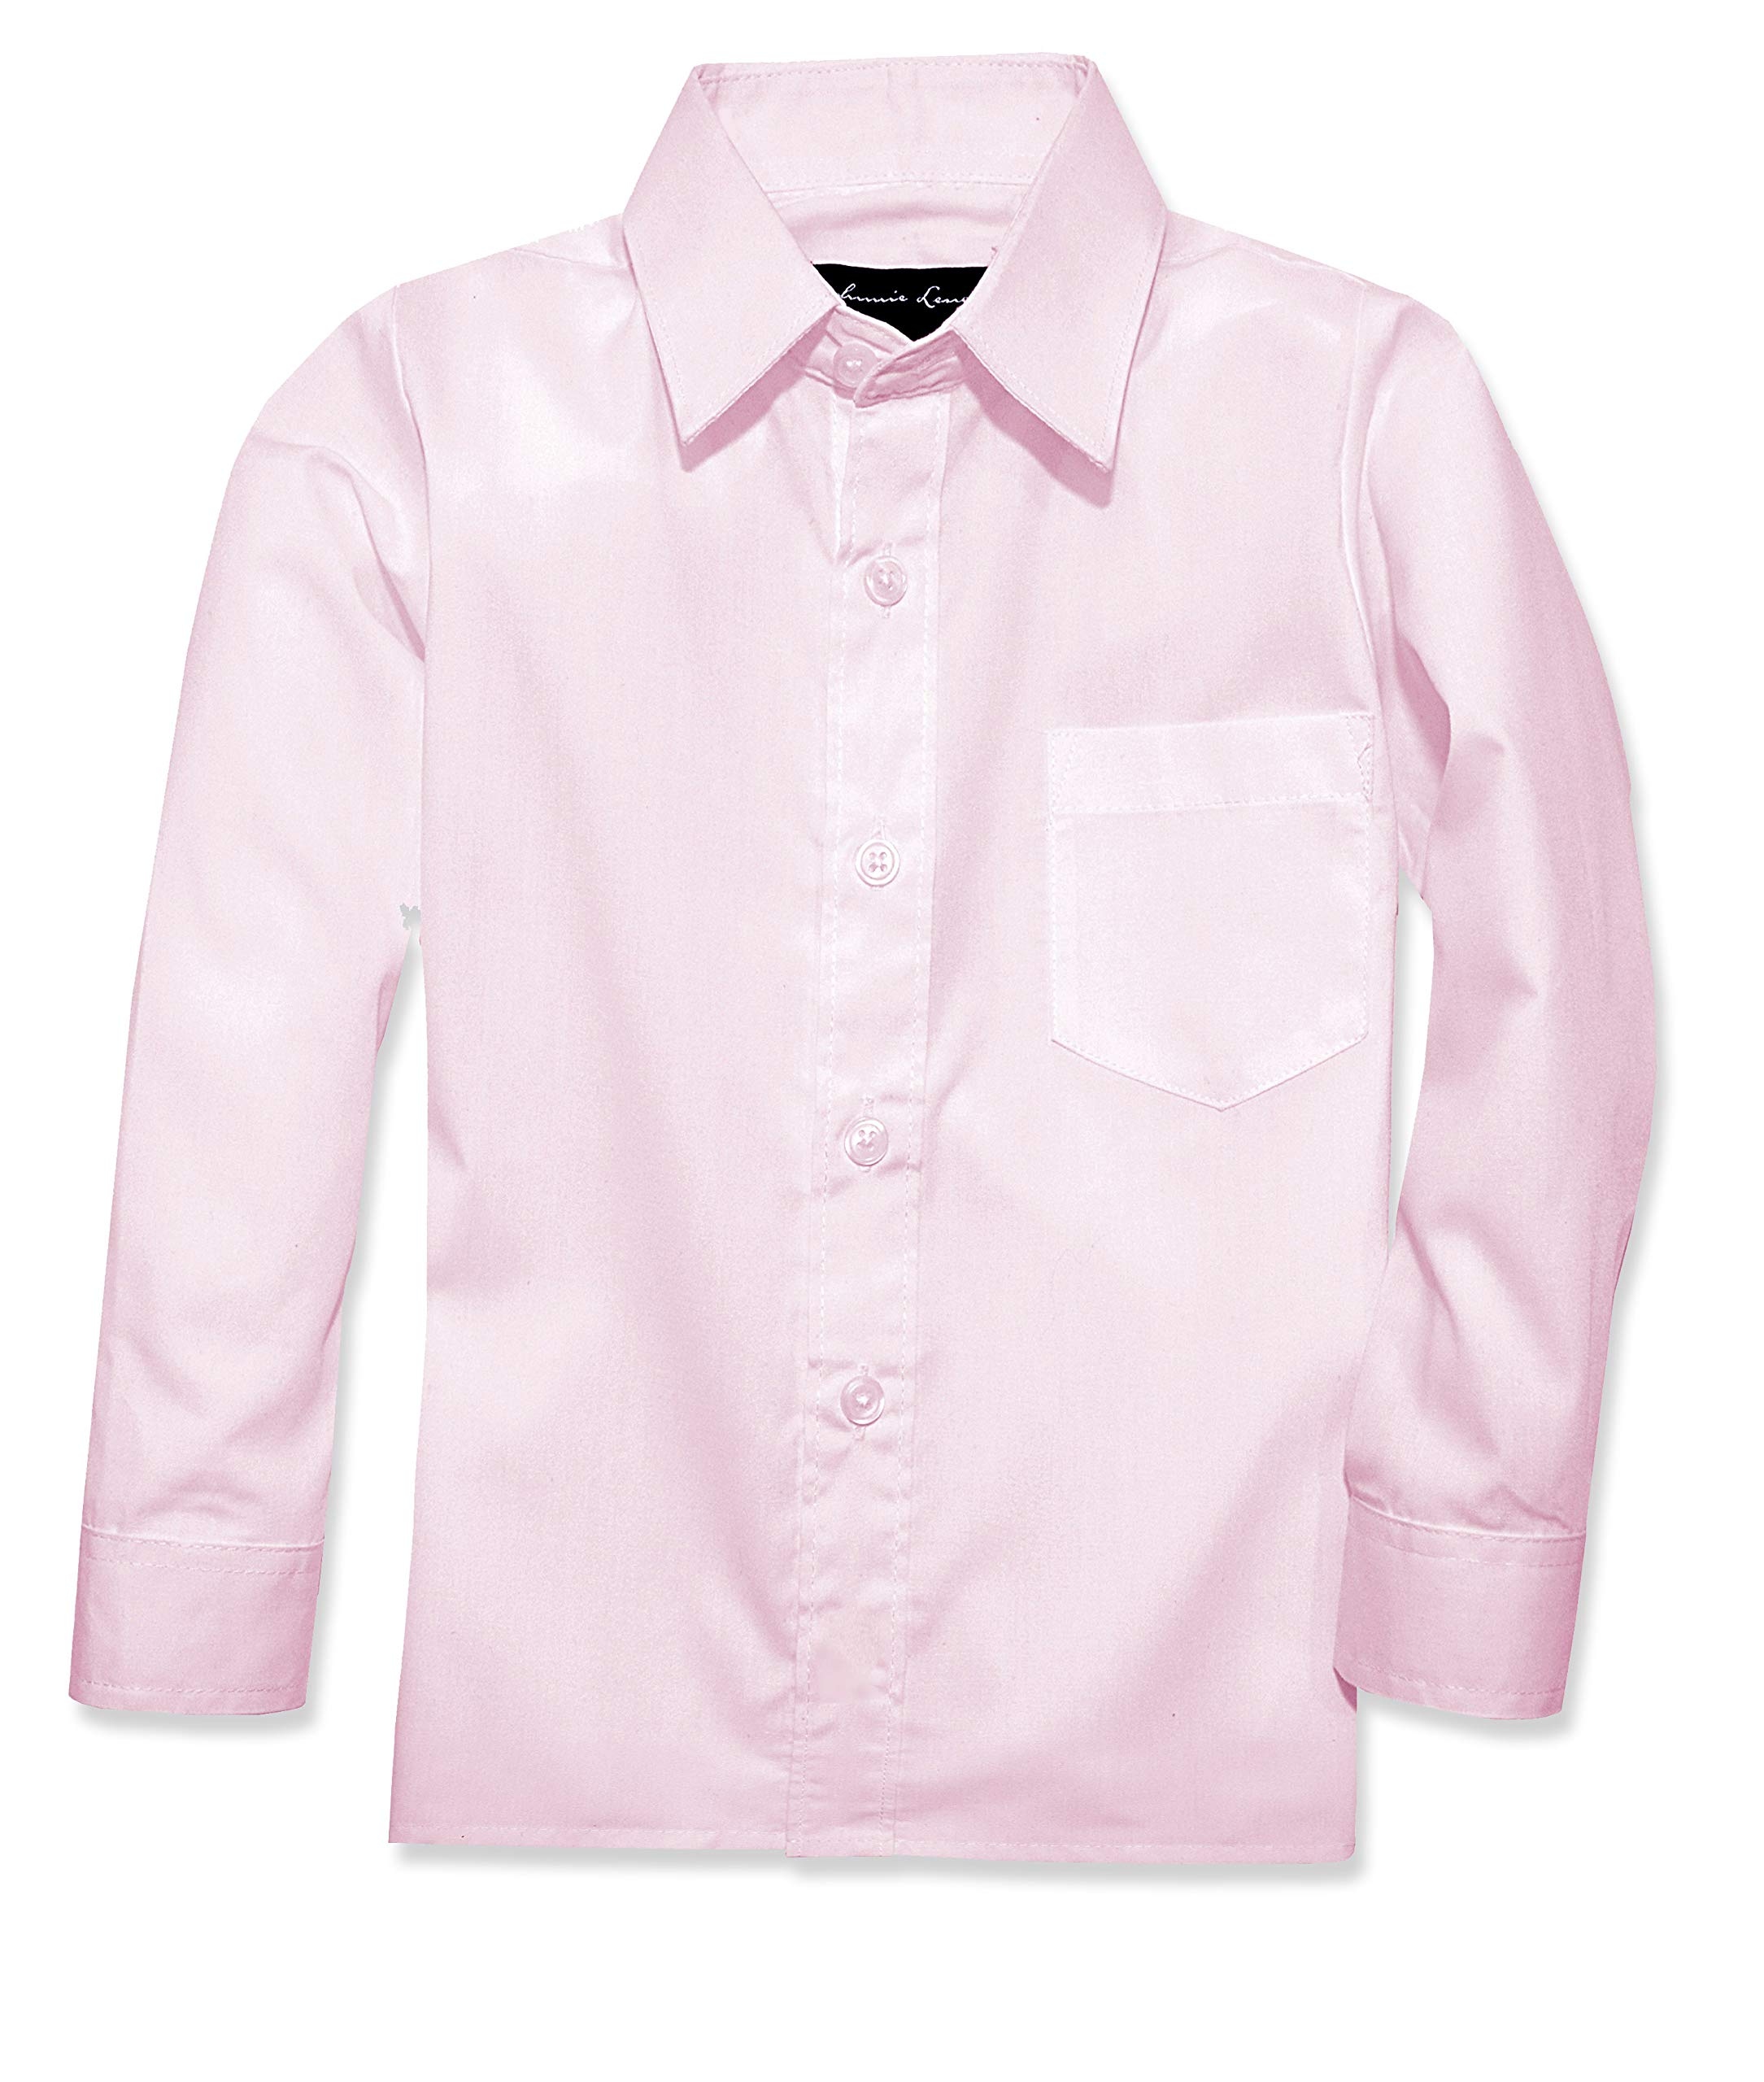 Johnnie Lene Boy's Long Sleeves Dress Shirt from Baby to Teen JJL32 (3T, Pink)